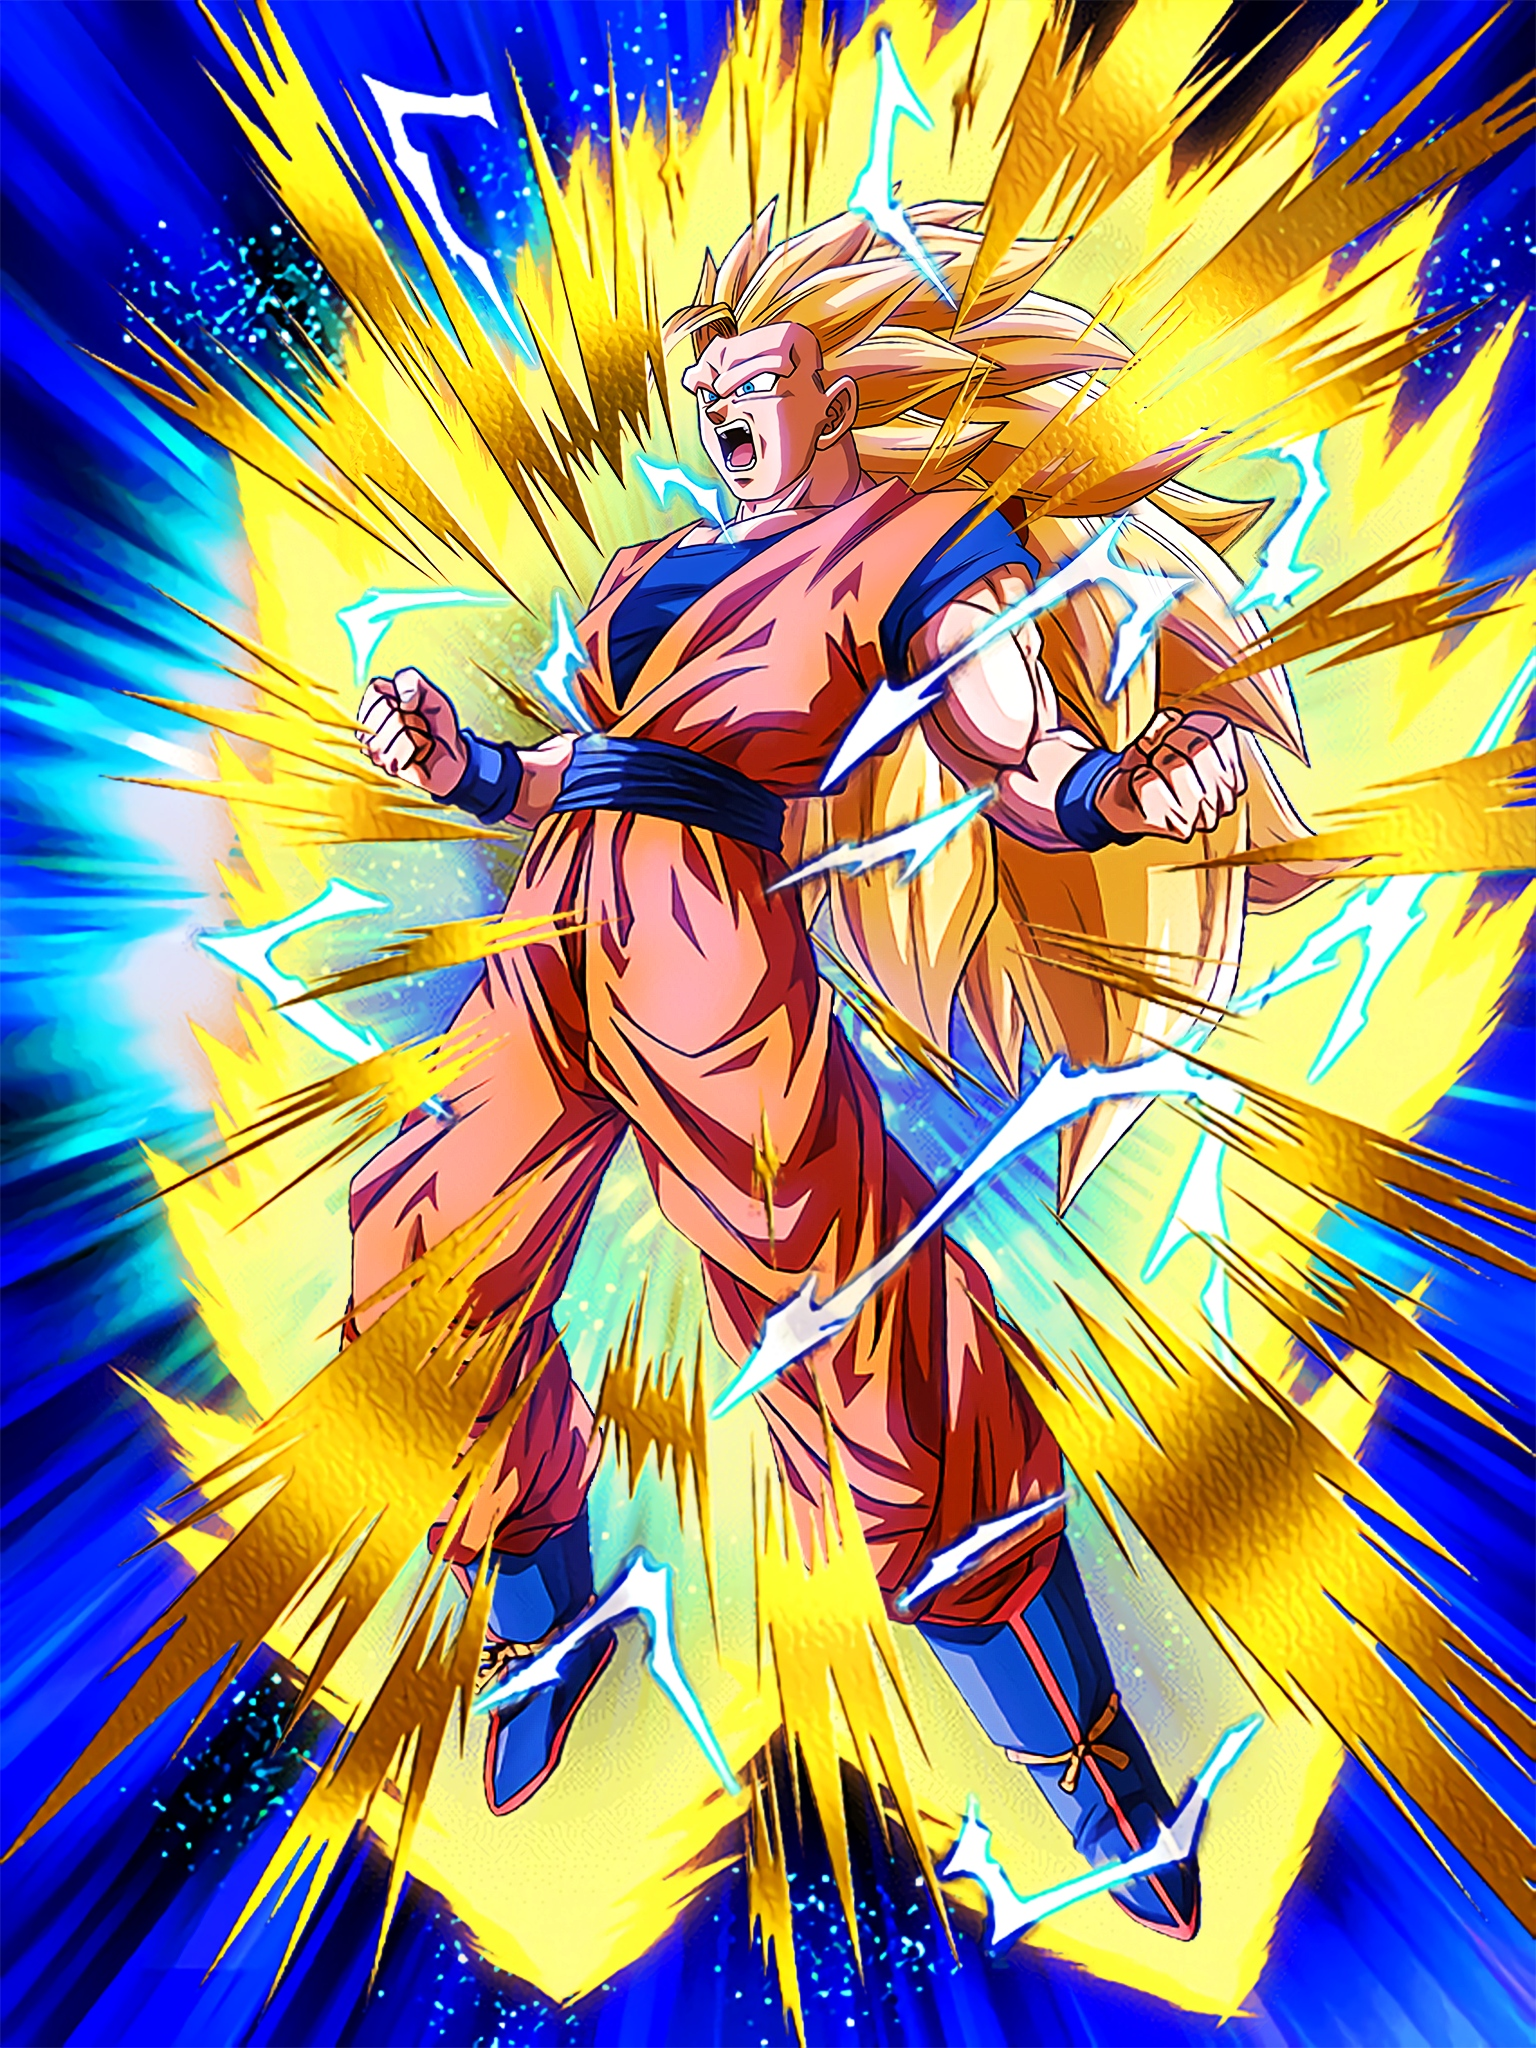 Stunning Metamorphosis Super Saiyan 3 Goku Art (Dragon Ball Z Dokkan Battle).jpg